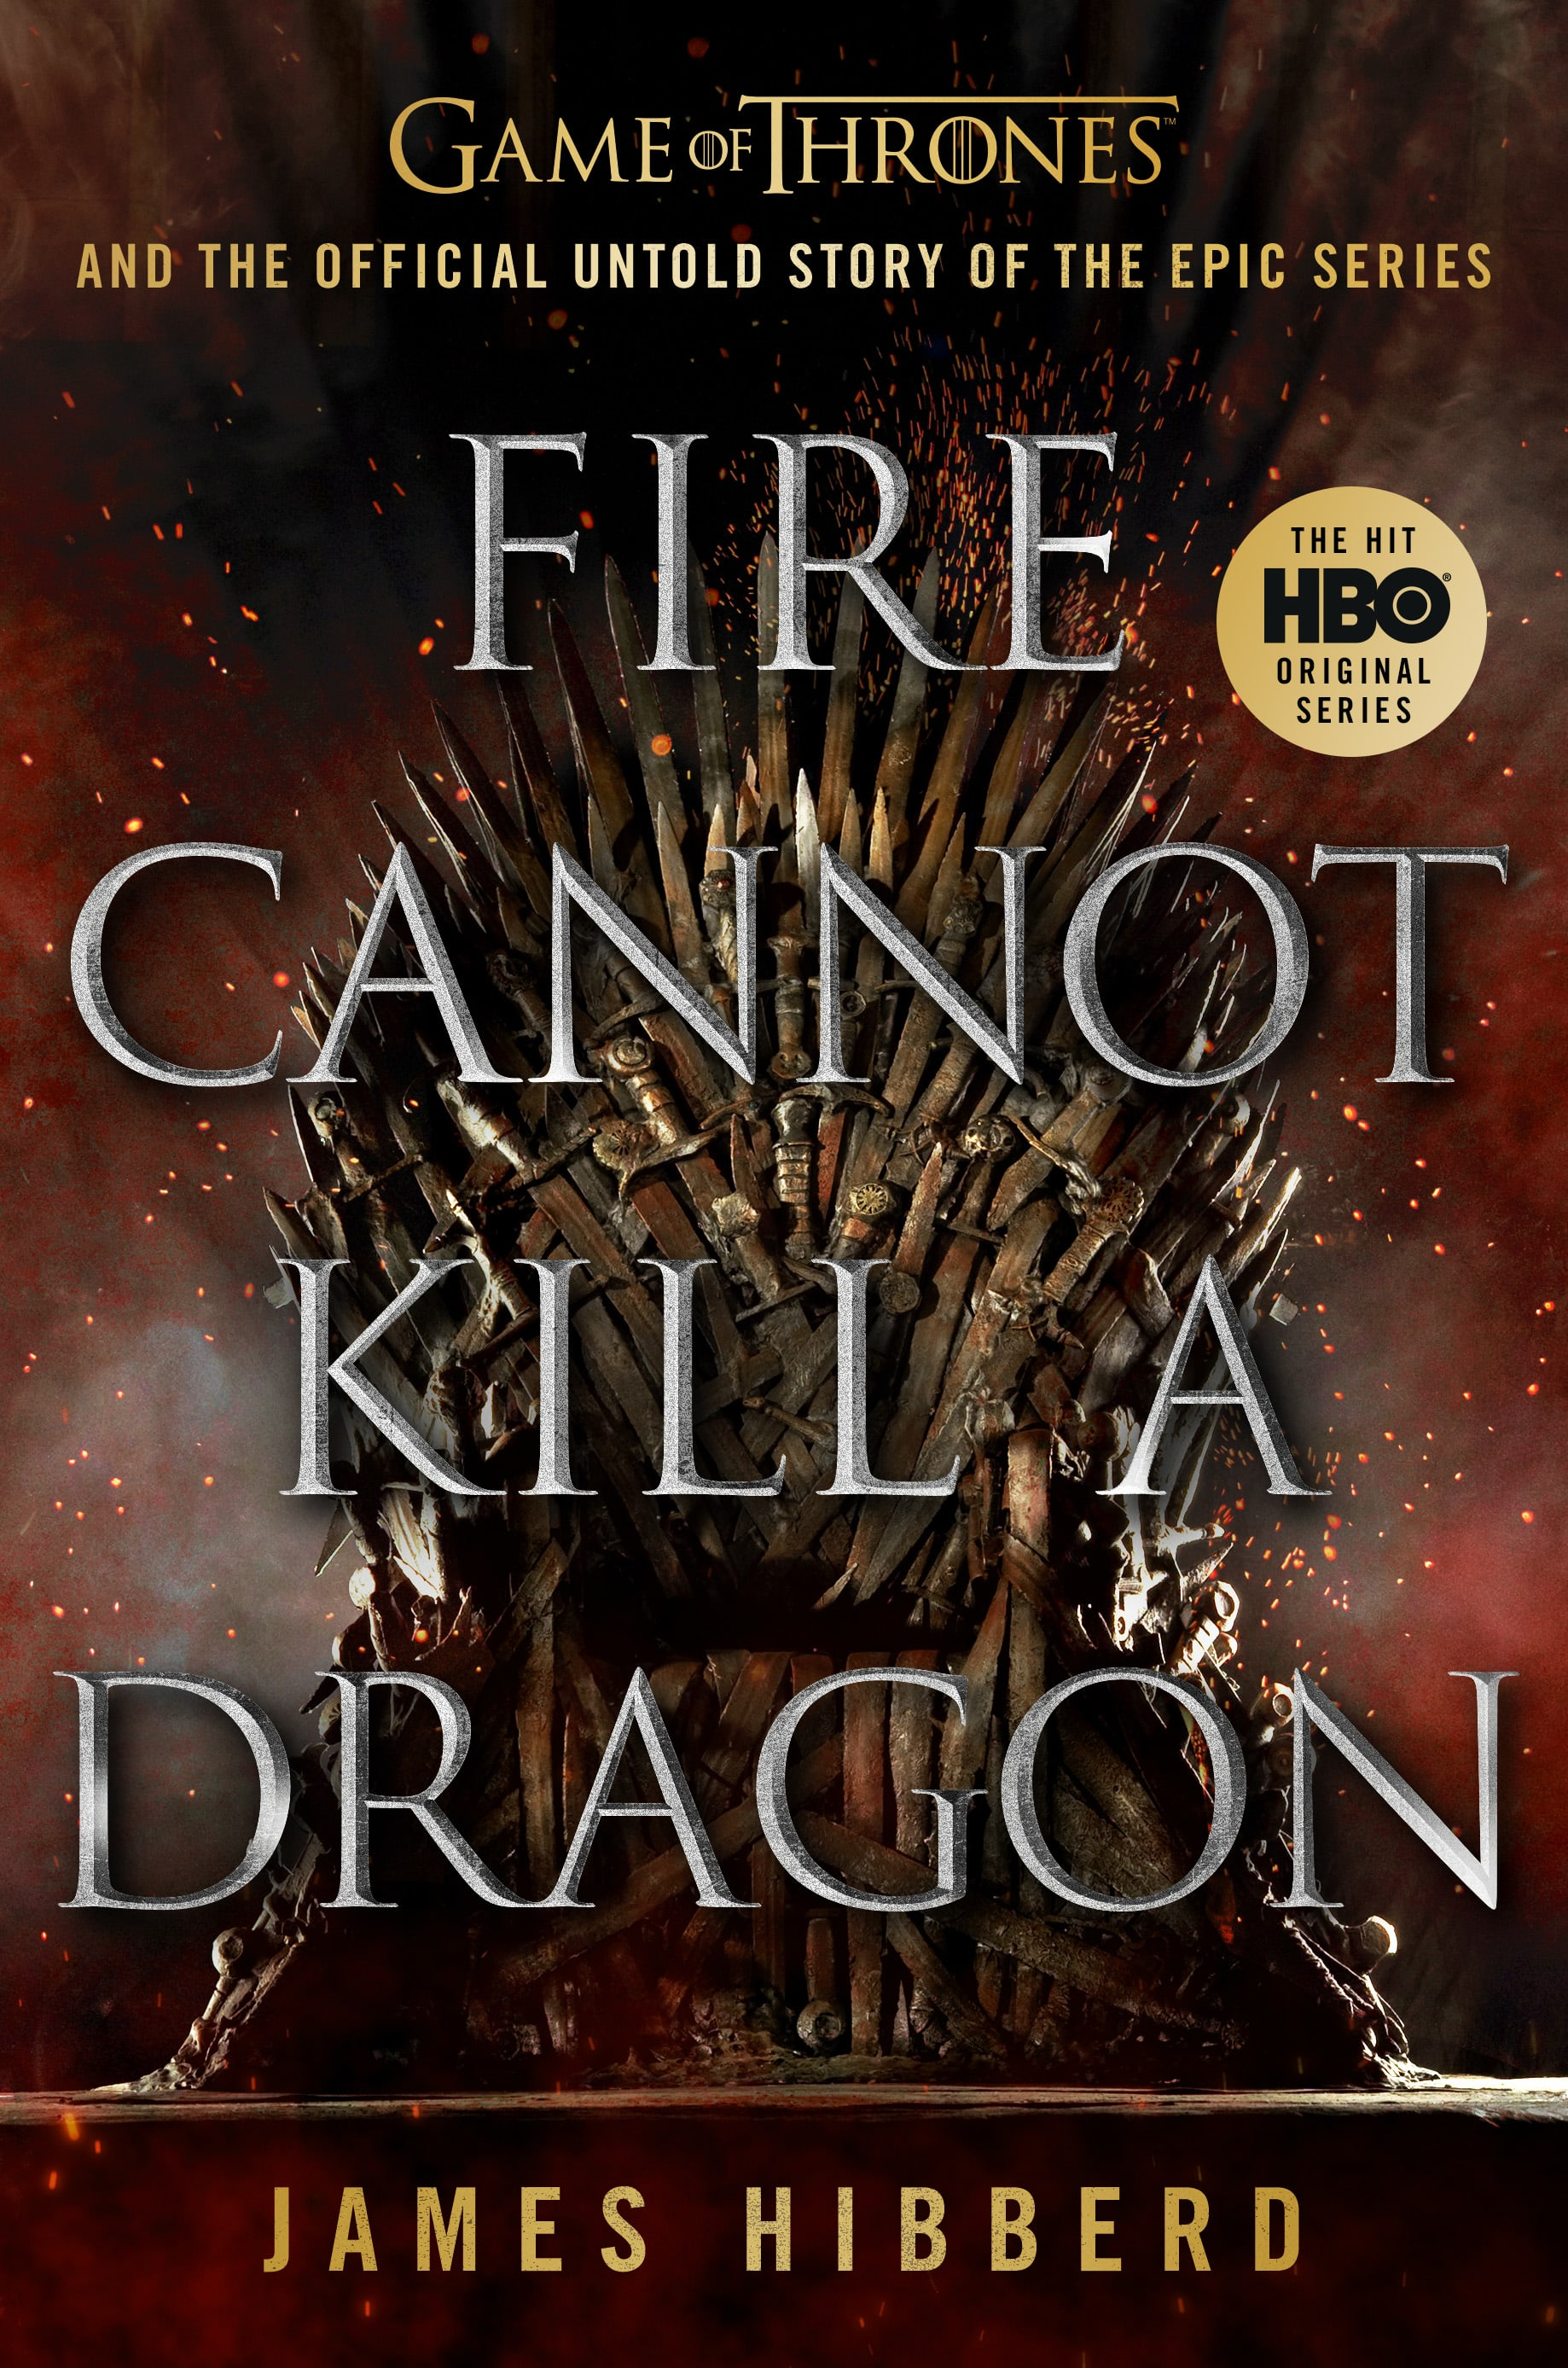 George R R Martin Endorses Upcoming Game Of Thrones Oral History Book